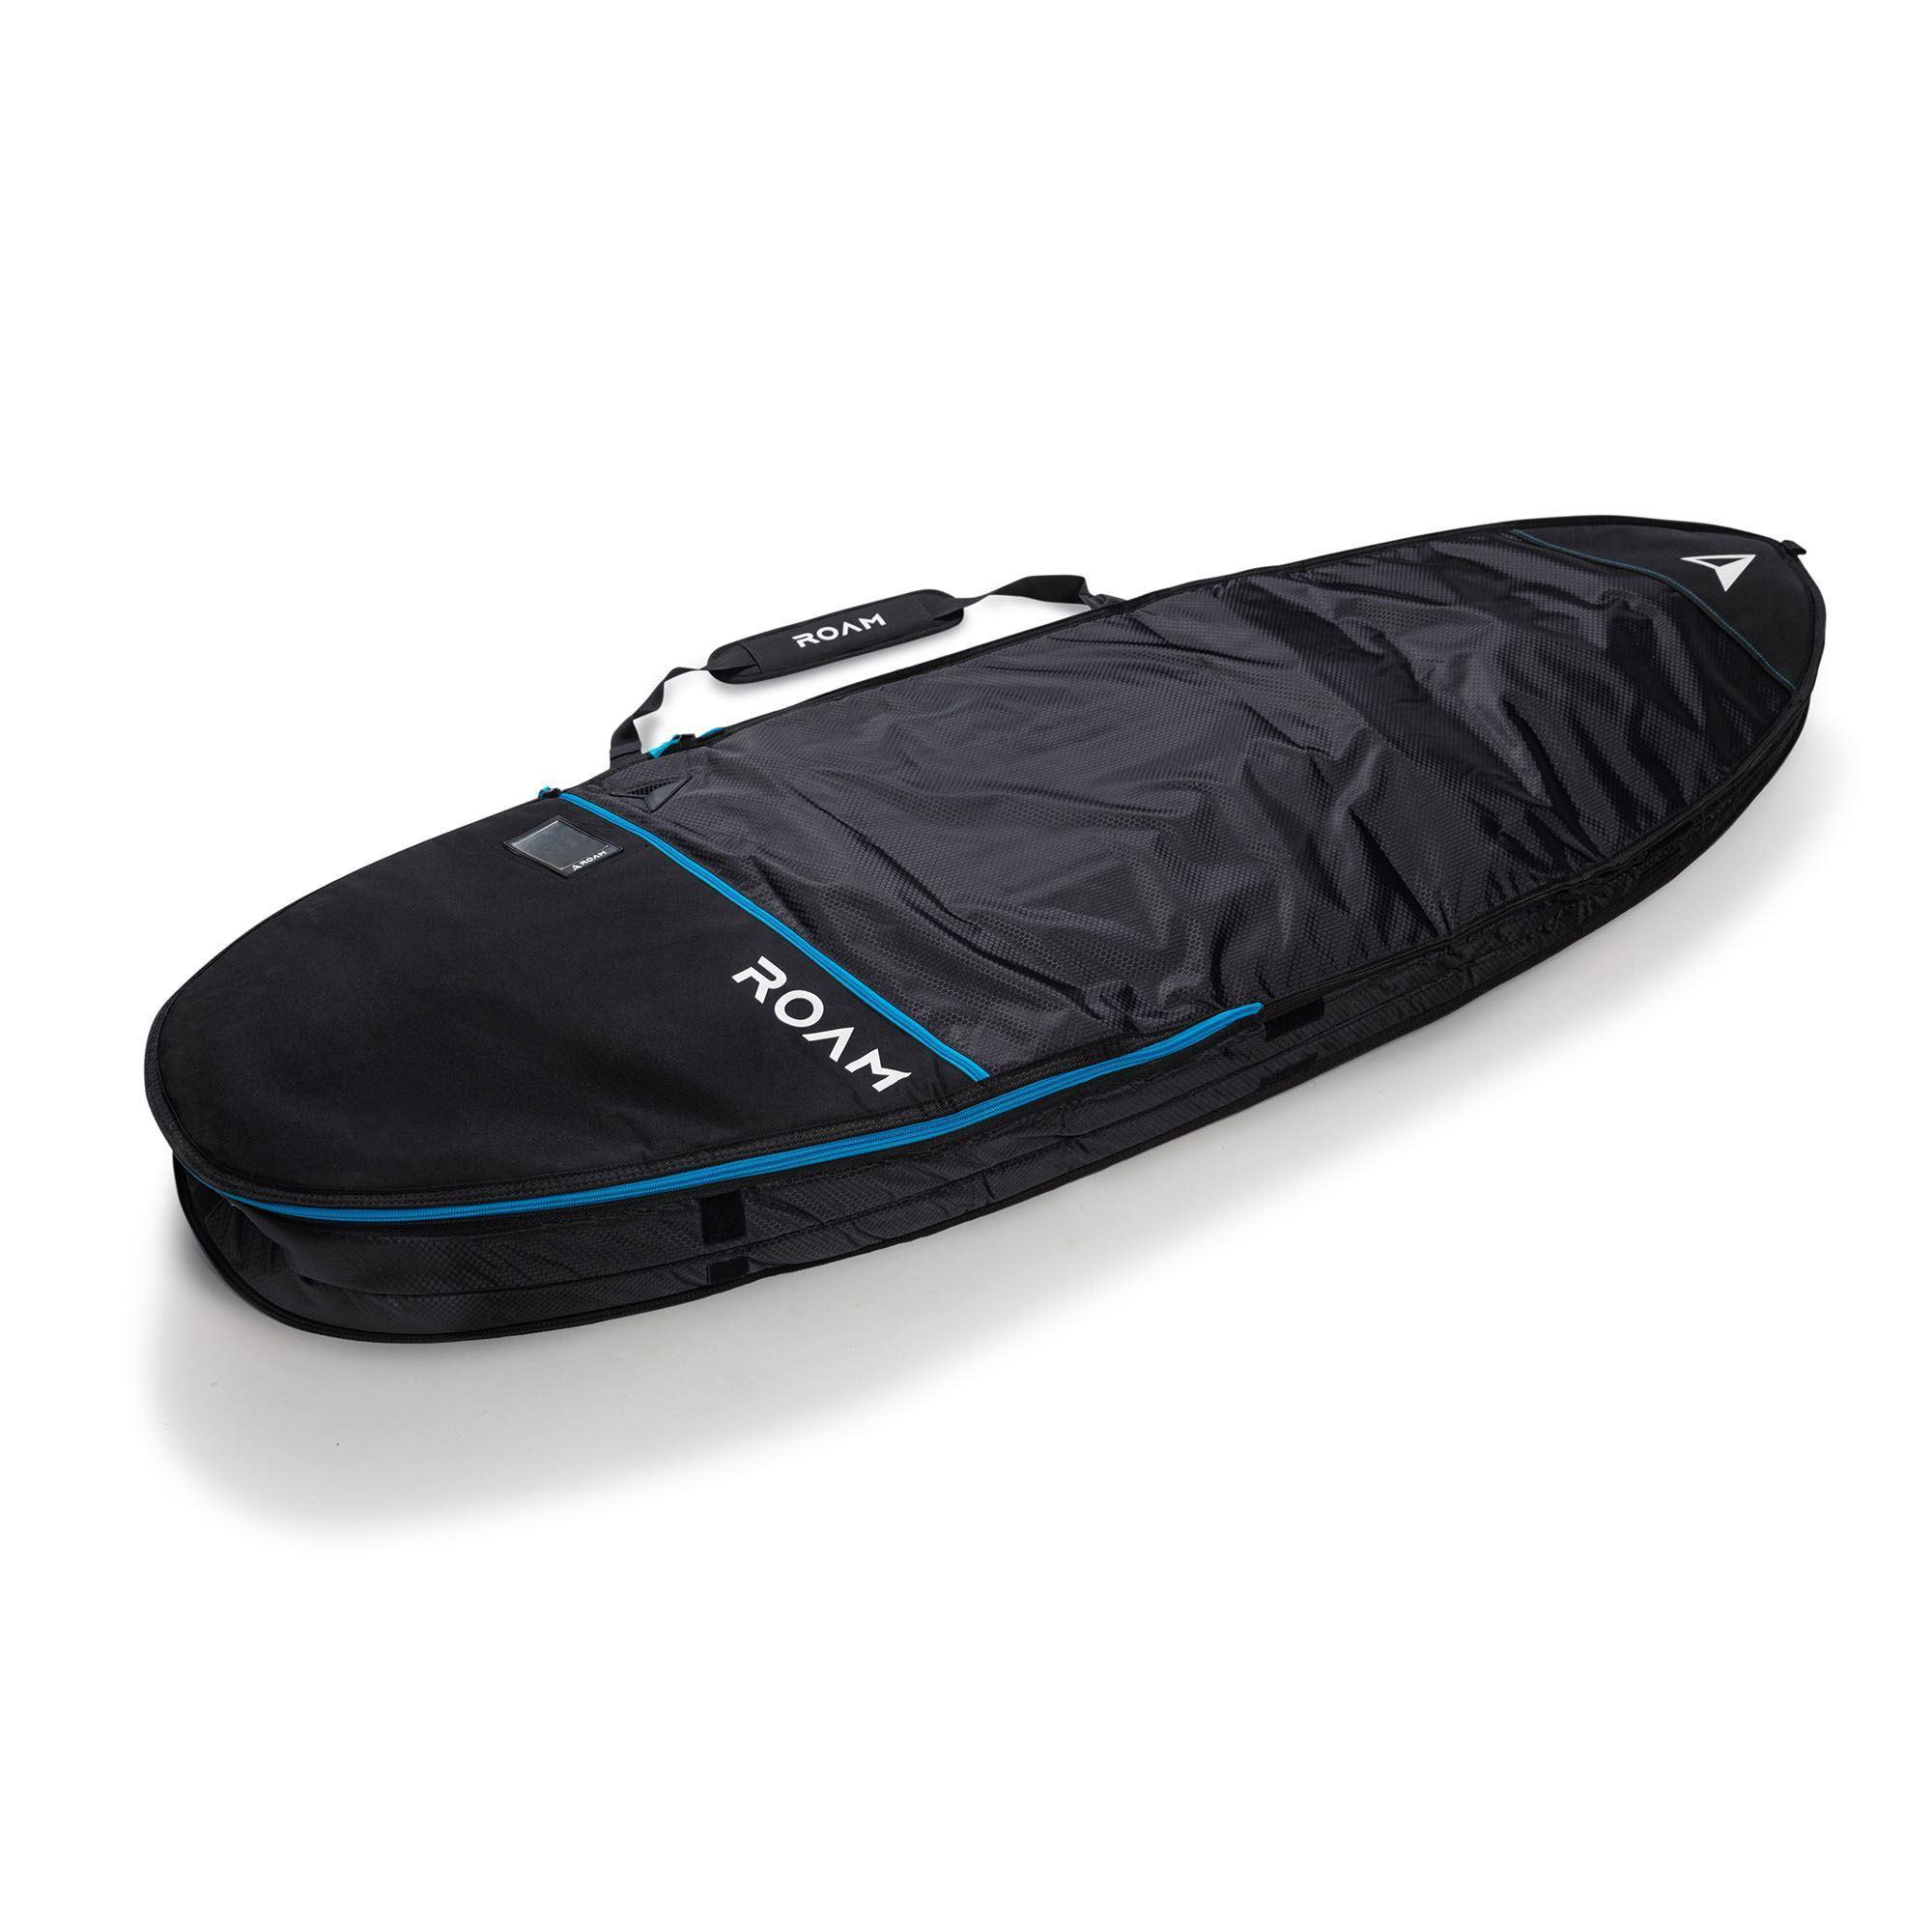 ROAM Boardbag Surfboard Tech Bag Doppel Fun 8.0